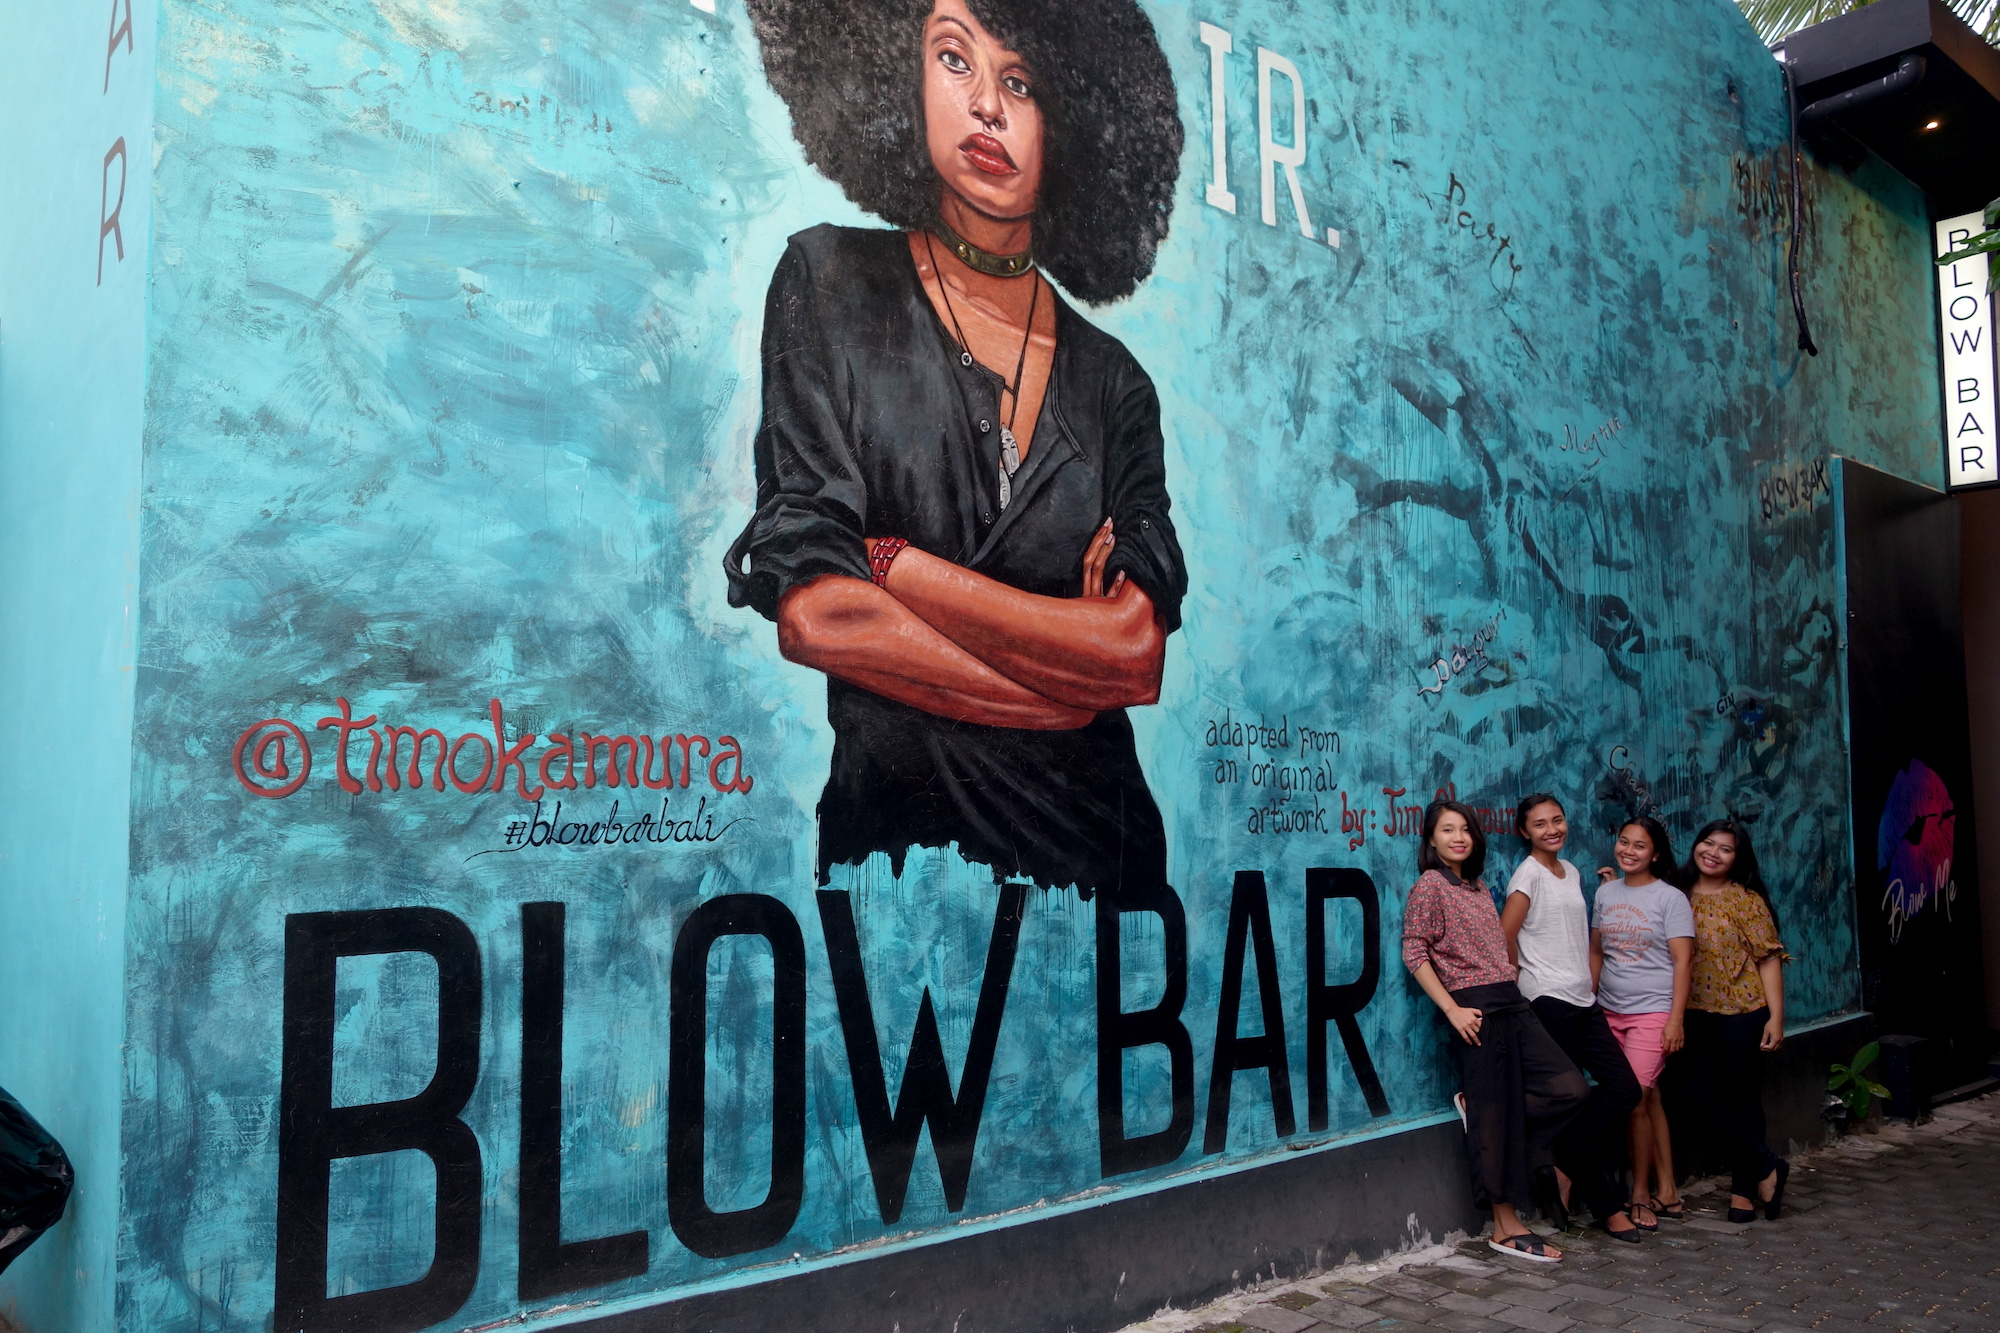 Have You Been to the Blow Bar Yet?